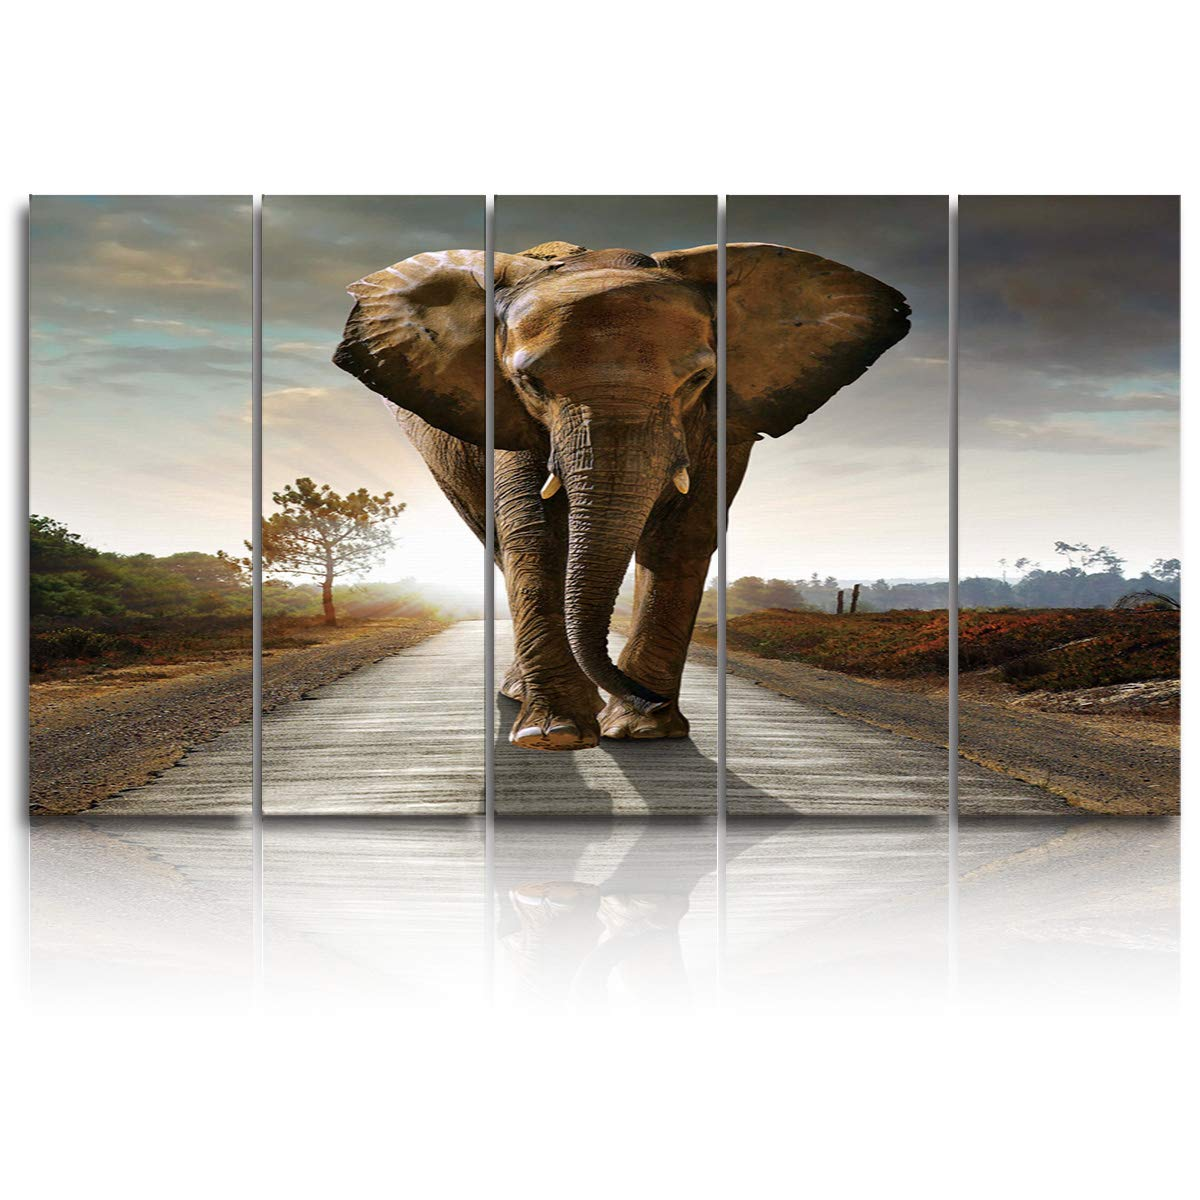 EZON-CH 5 Panels Canvas Wall Art Prints Elephant Walking in Sunrise Painting On Canvas Modern Artwork Extra Large Poster Ready to Hang for Living Room Bedroom Office Home Decor - 12x32 inchx5